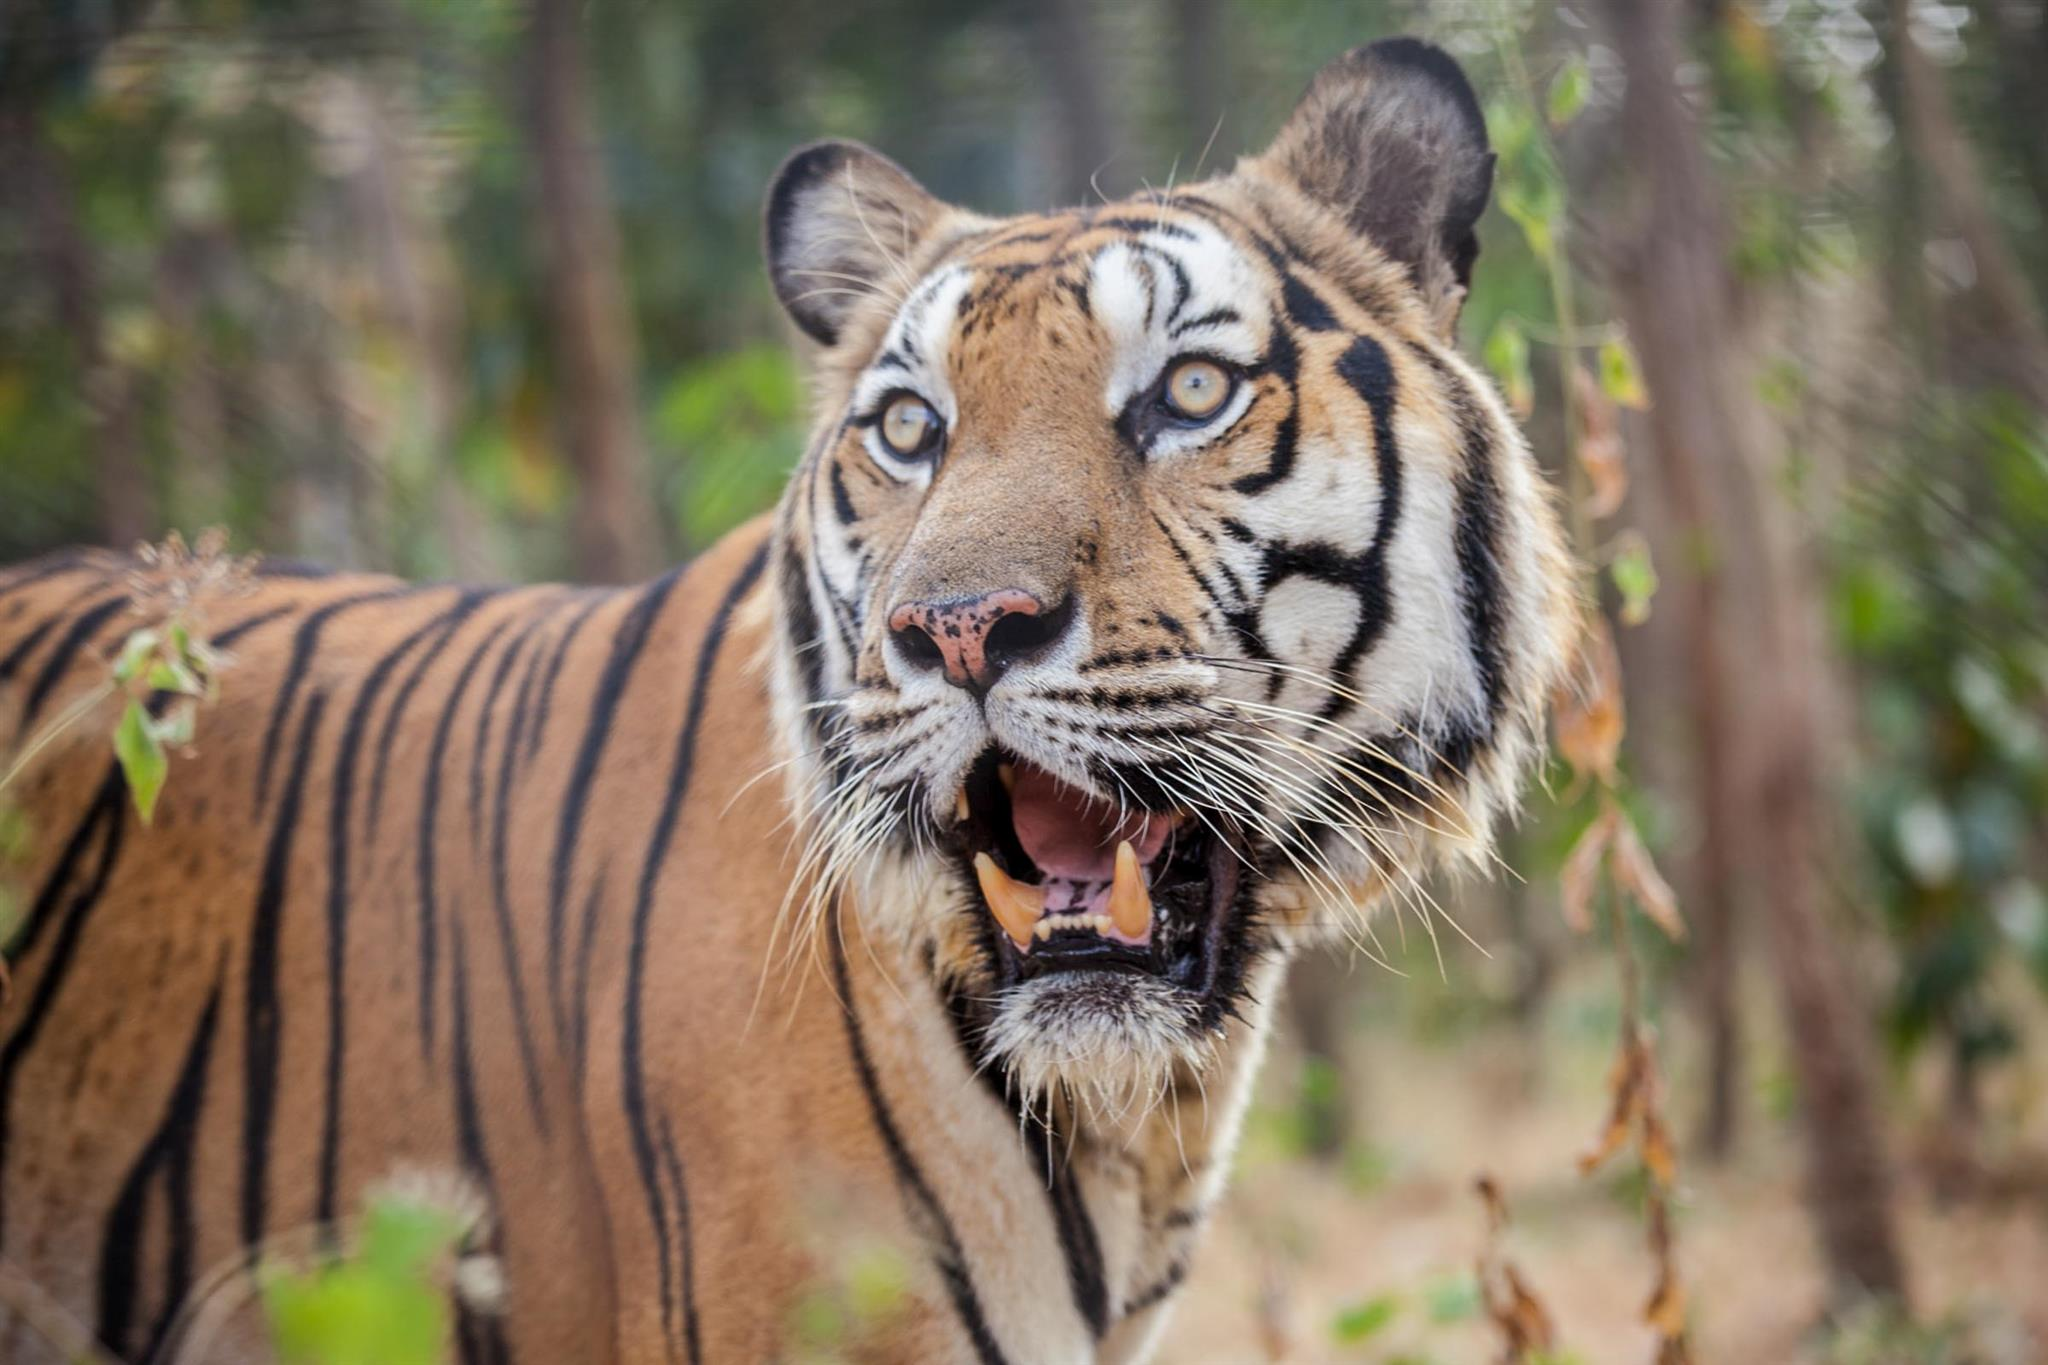 Global Tiger Day 2019